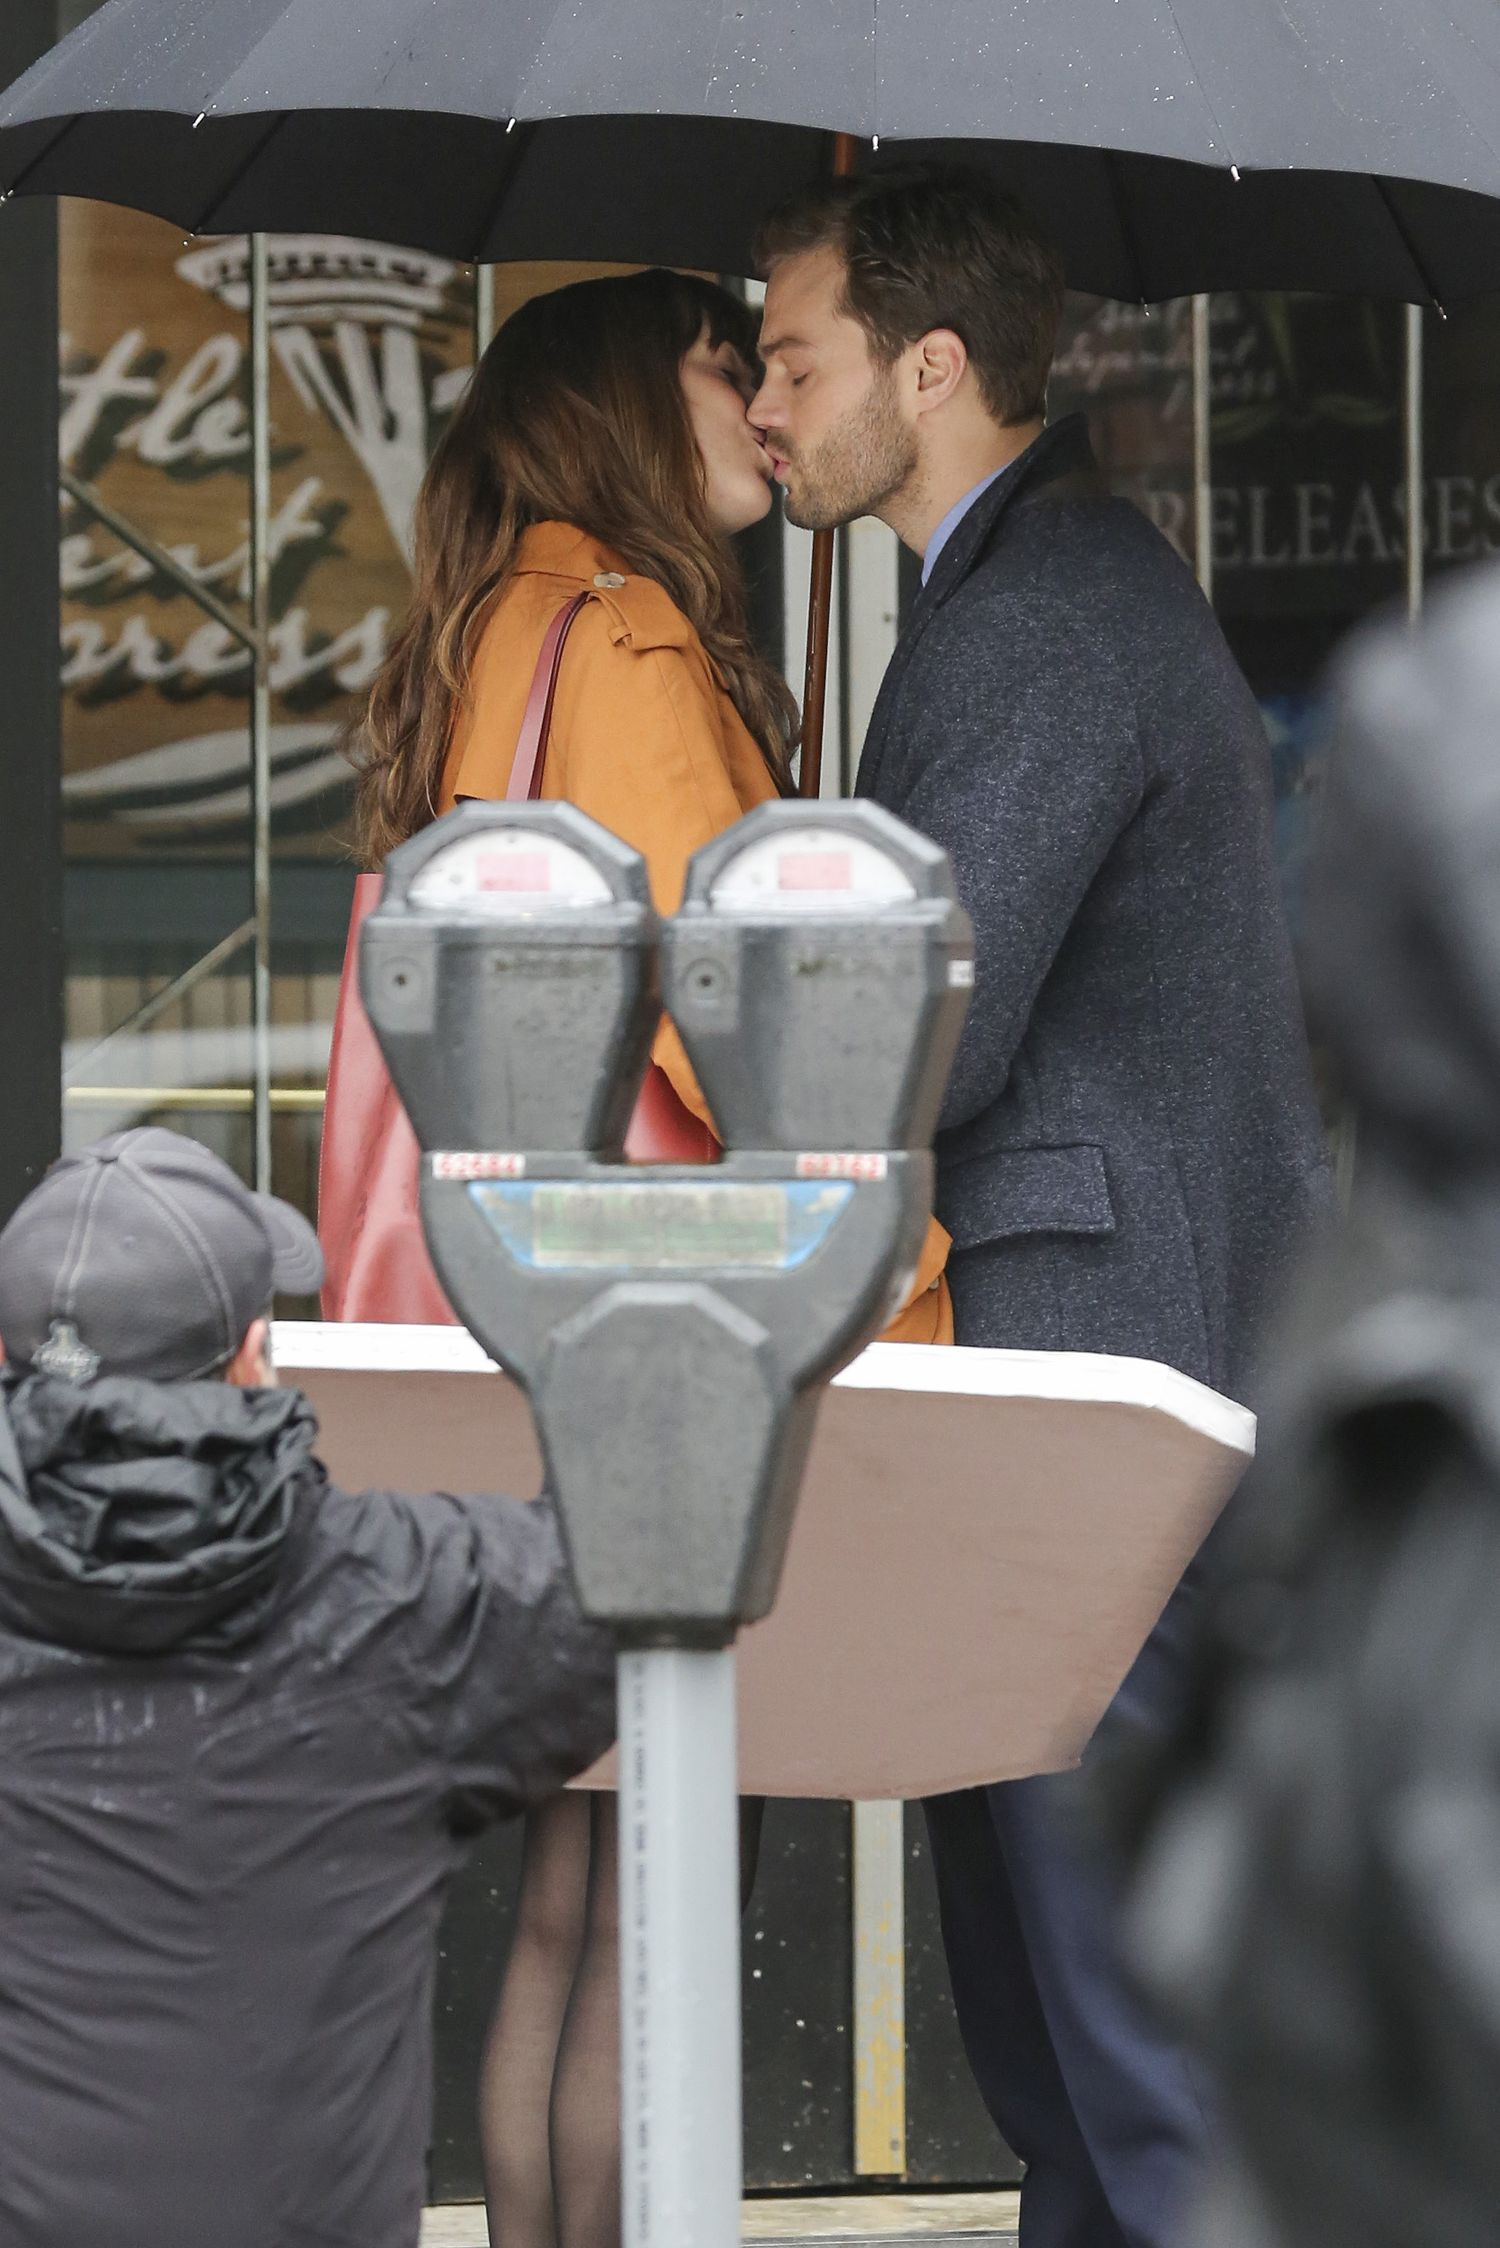 Jamie Dornan and Dakota Johnson are back in Vancouver to begin production on 'Fifty Shades Darker' the sequel to last year's $500M+ hit to 'Fifty Shades of Grey.' Now sporting some bad boy scruff, Jamie Dornan waits for Dakota Johnson outside of 'Seattle Independent Publishing' the company Anastasia Steele (Dakota) works at. They exchange a kiss before going for a brief walk where she gives Mr. Grey a present! Pictured: jamie dornan, dakota johnson Ref: SPL1234796 010316 Picture by: Splash News Splash News and Pictures Los Angeles: 310-821-2666 New York: 212-619-2666 London: 870-934-2666 photodesk@splashnews.com